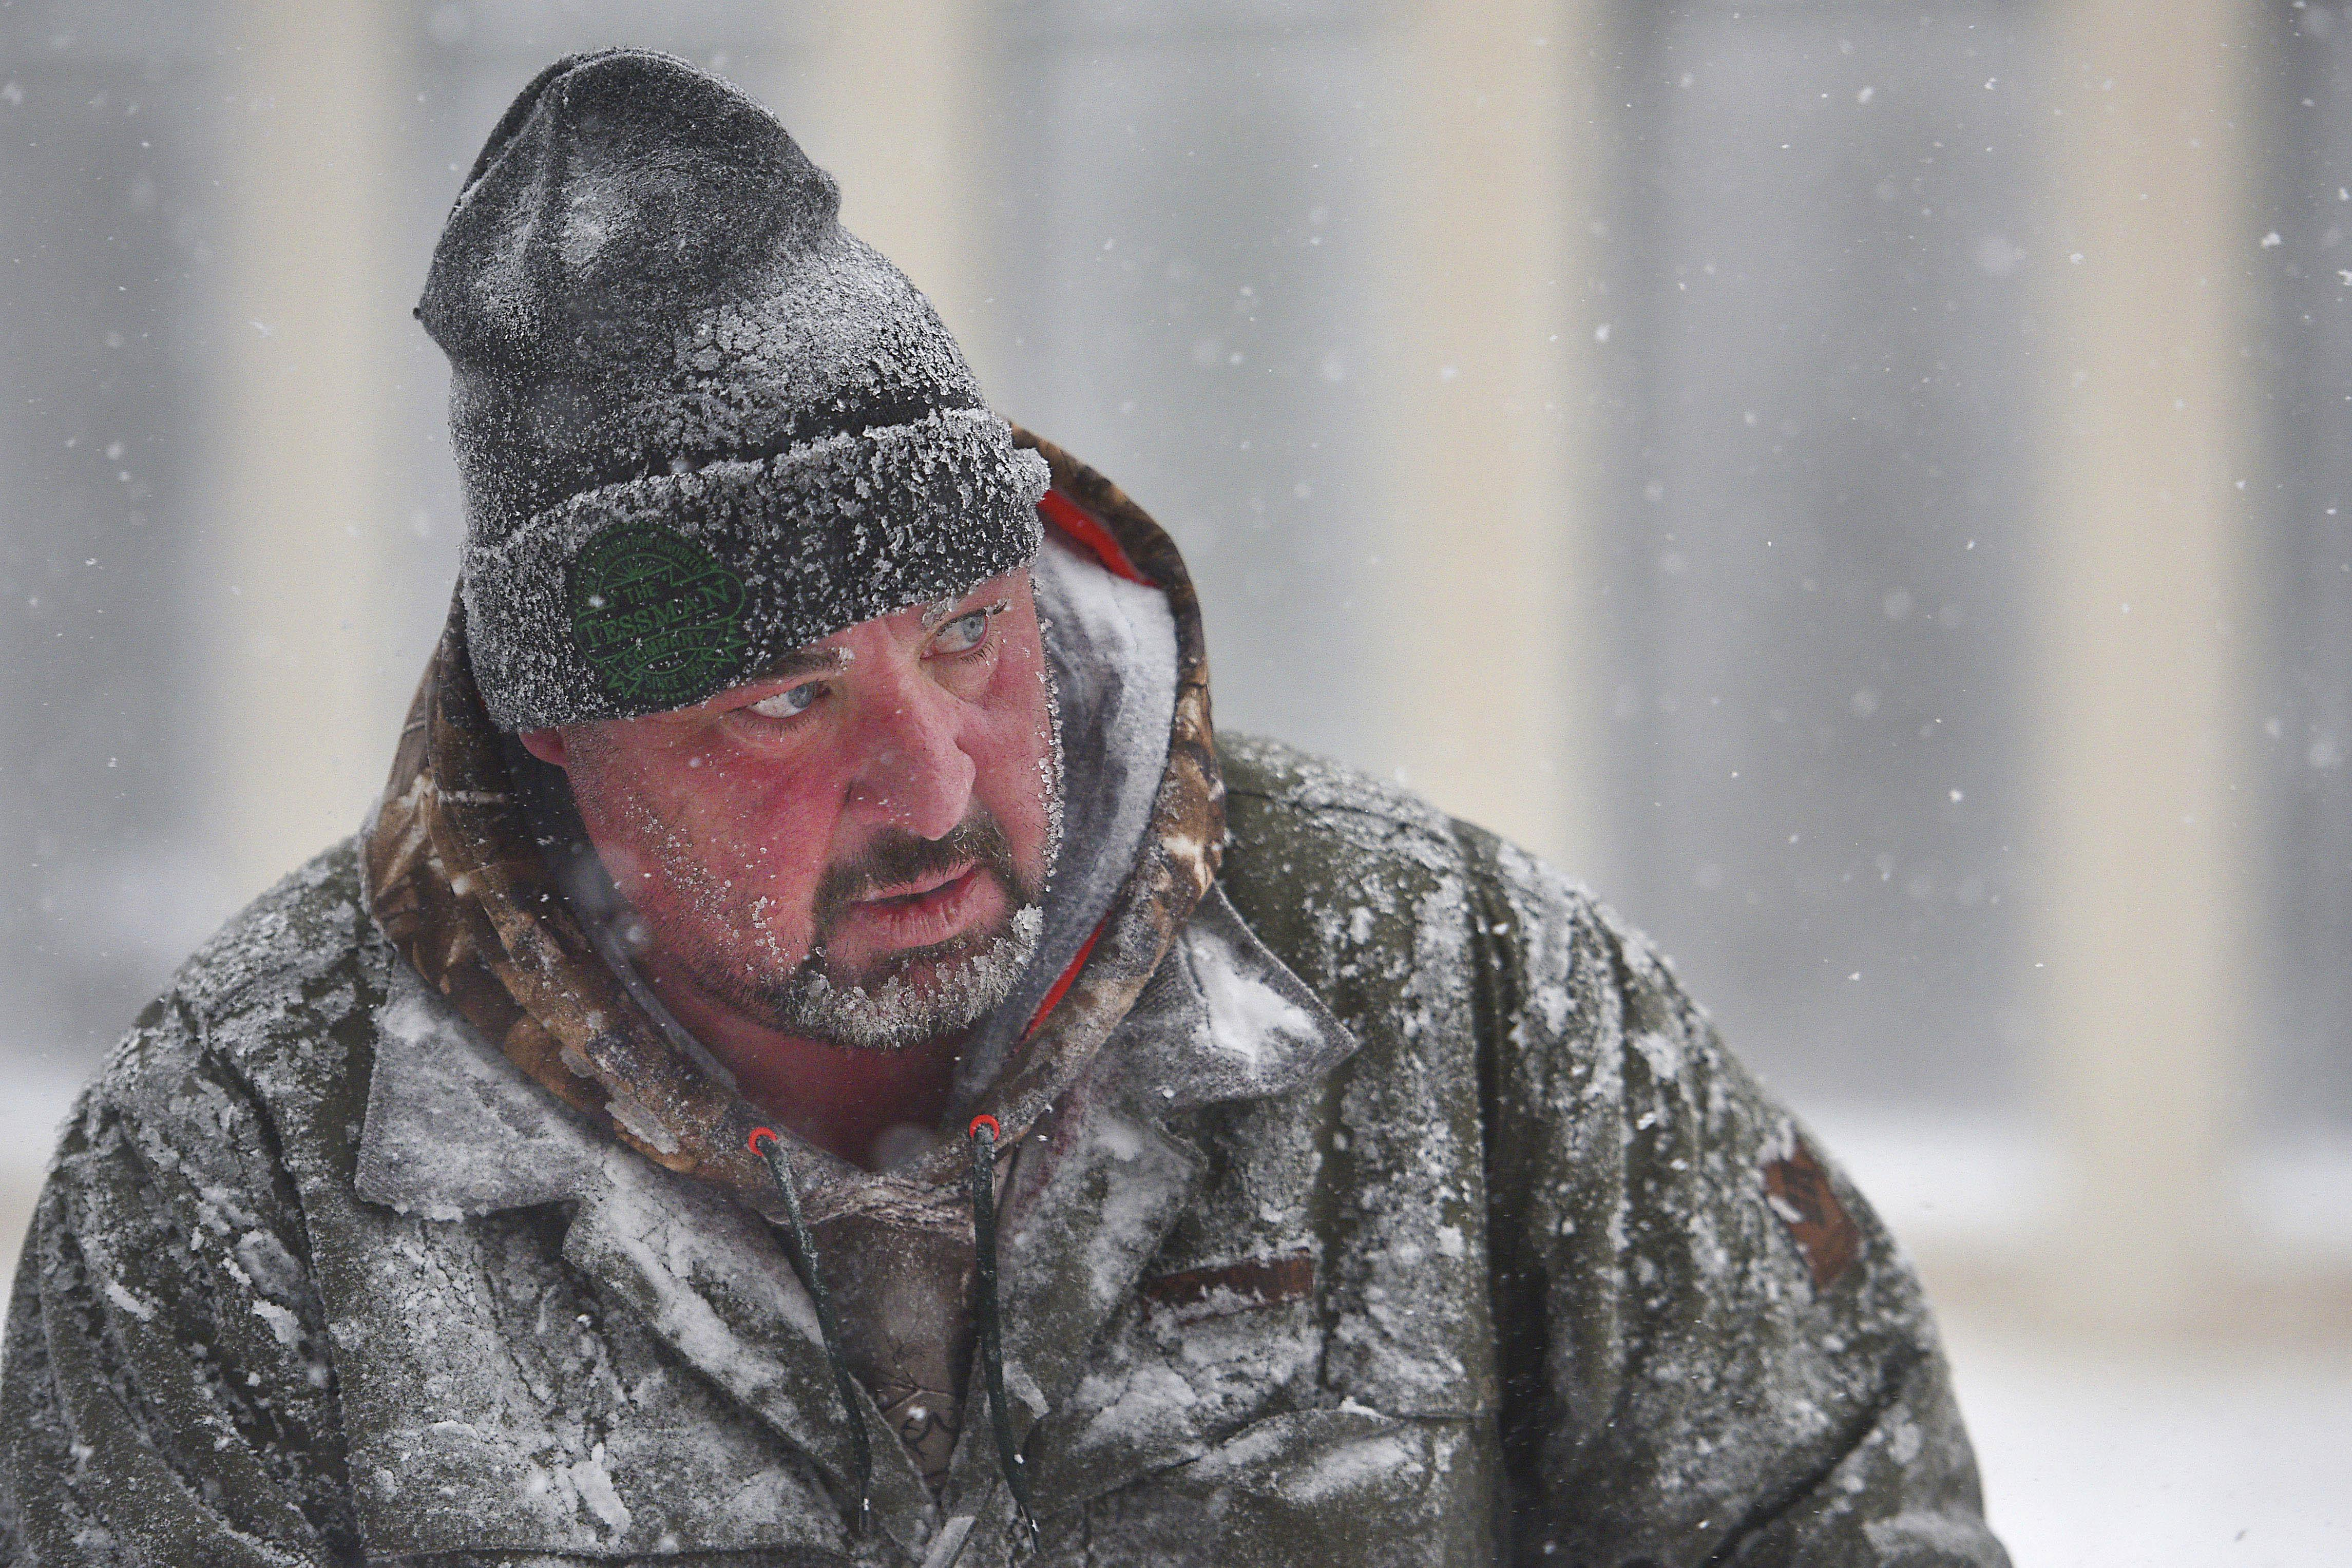 Storm blasts central U S  with snow, ice and wind, killing 3 | The